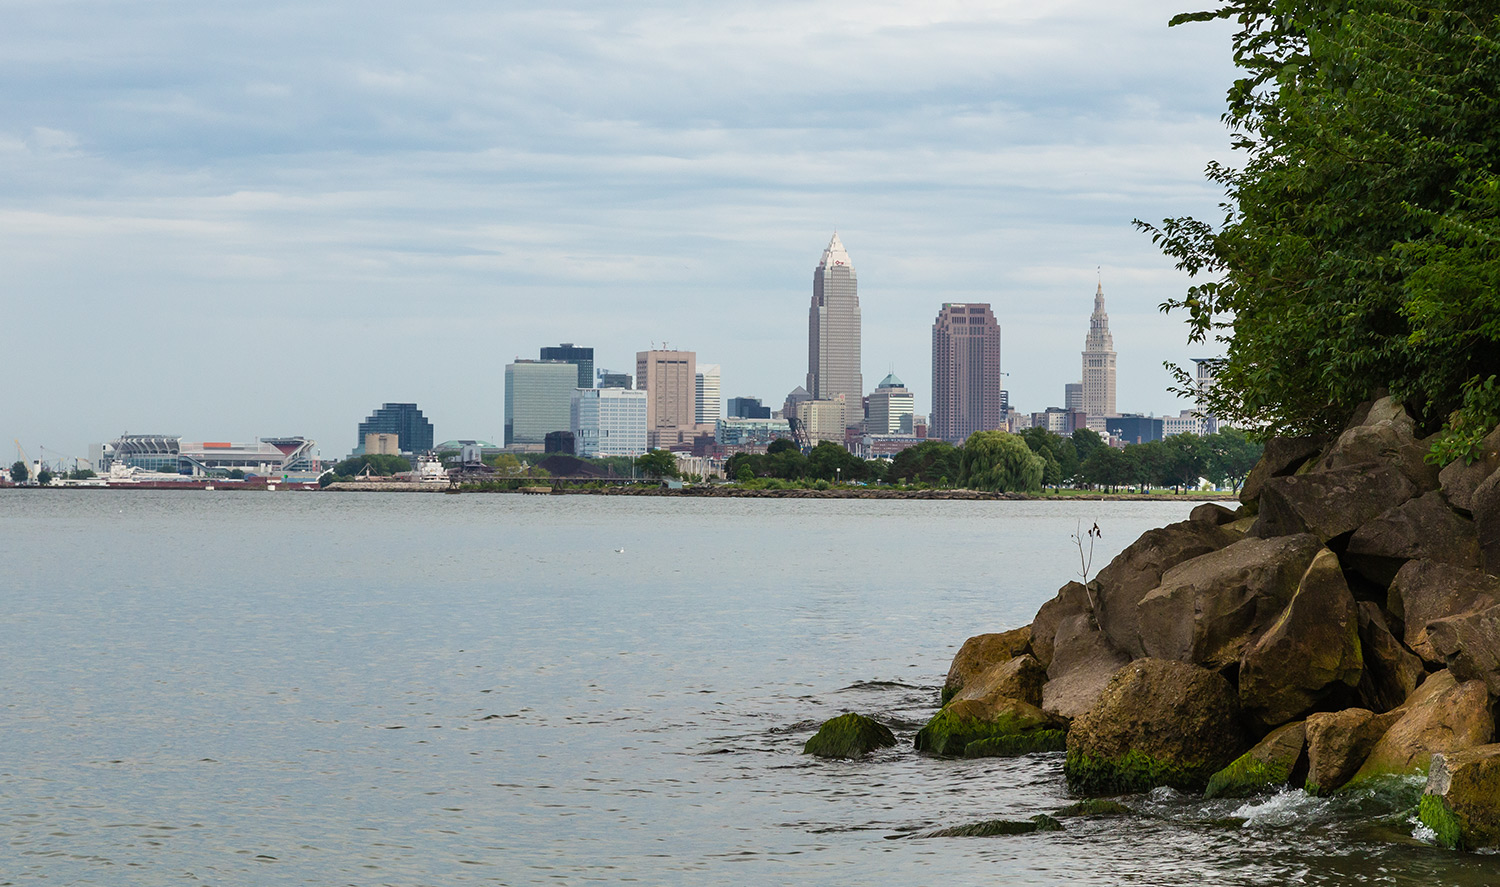 Cleveland Skyline 2018 from Edgewater Park